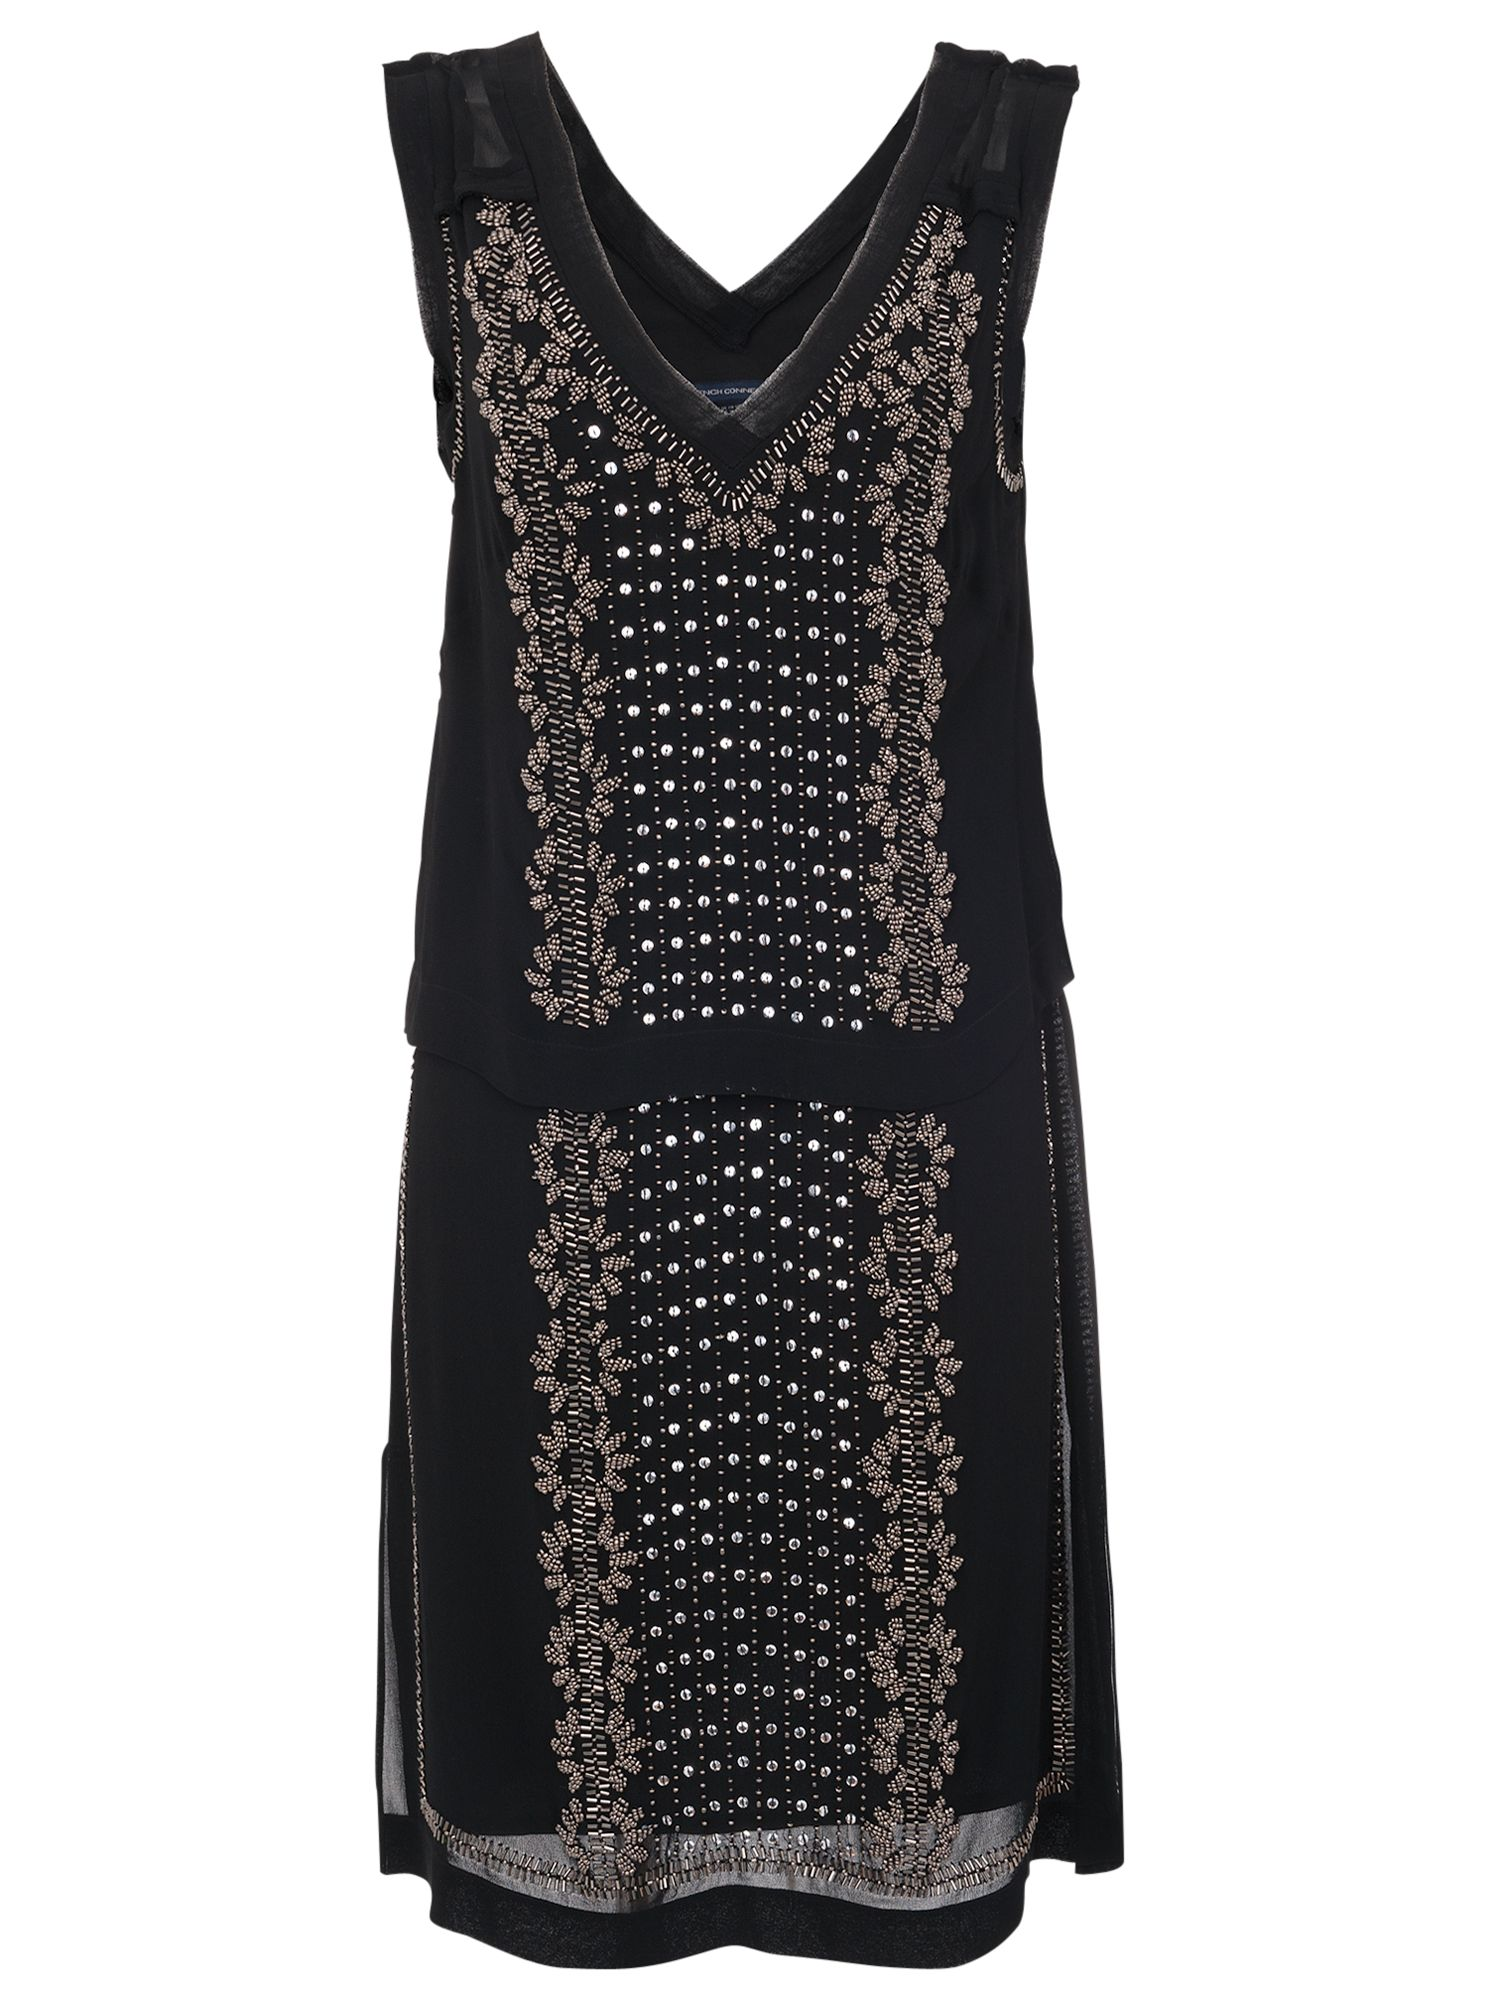 french connection la bohome embellished tunic dress black, french, connection, bohome, embellished, tunic, dress, black, french connection, 8|10, clearance, womenswear offers, womens dresses offers, new years party offers, women, inactive womenswear, new reductions, womens dresses, party outfits, party dresses, special offers, edition magazine, embellishment, 1745290